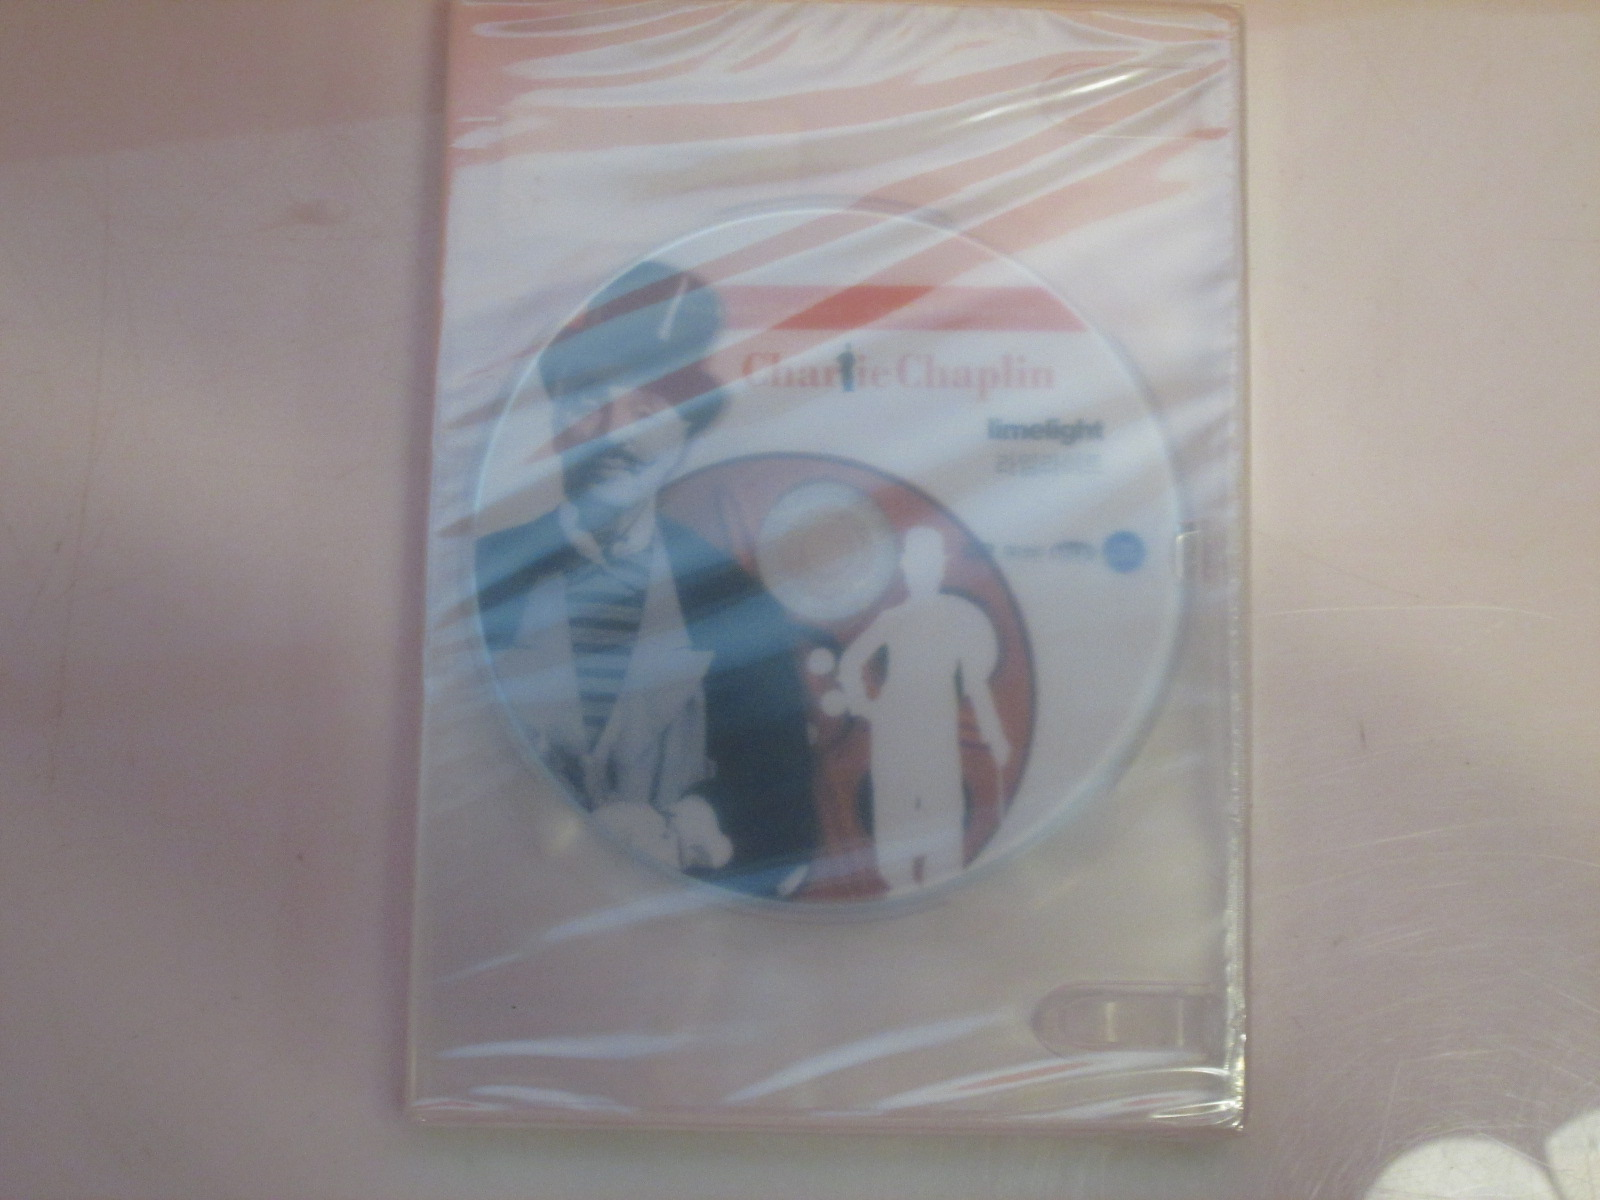 Limelight On DVD With Charles Chaplin